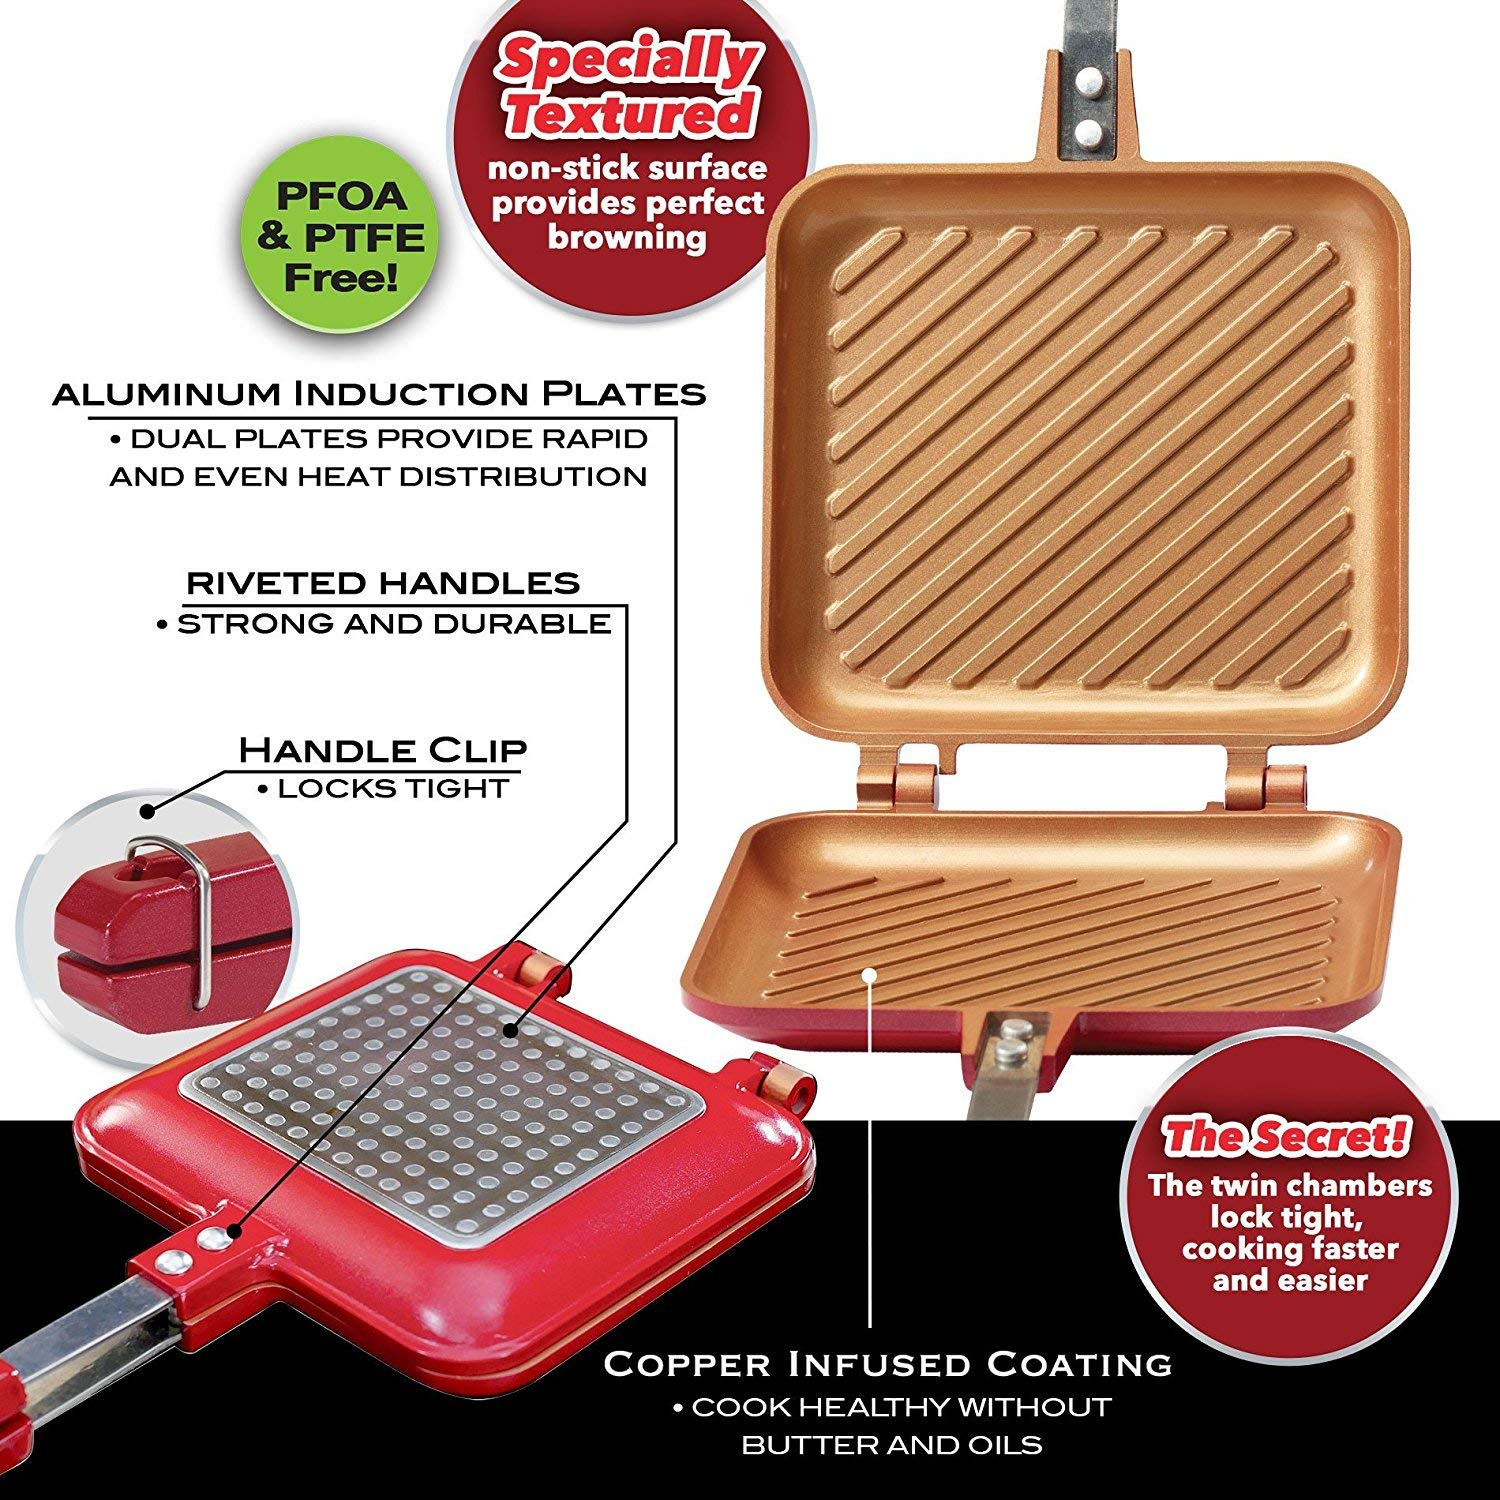 Red Copper Double-Coated Flipwich Non-Stick Grilled Sandwich and Panini Maker by BulbHead by Telebrand